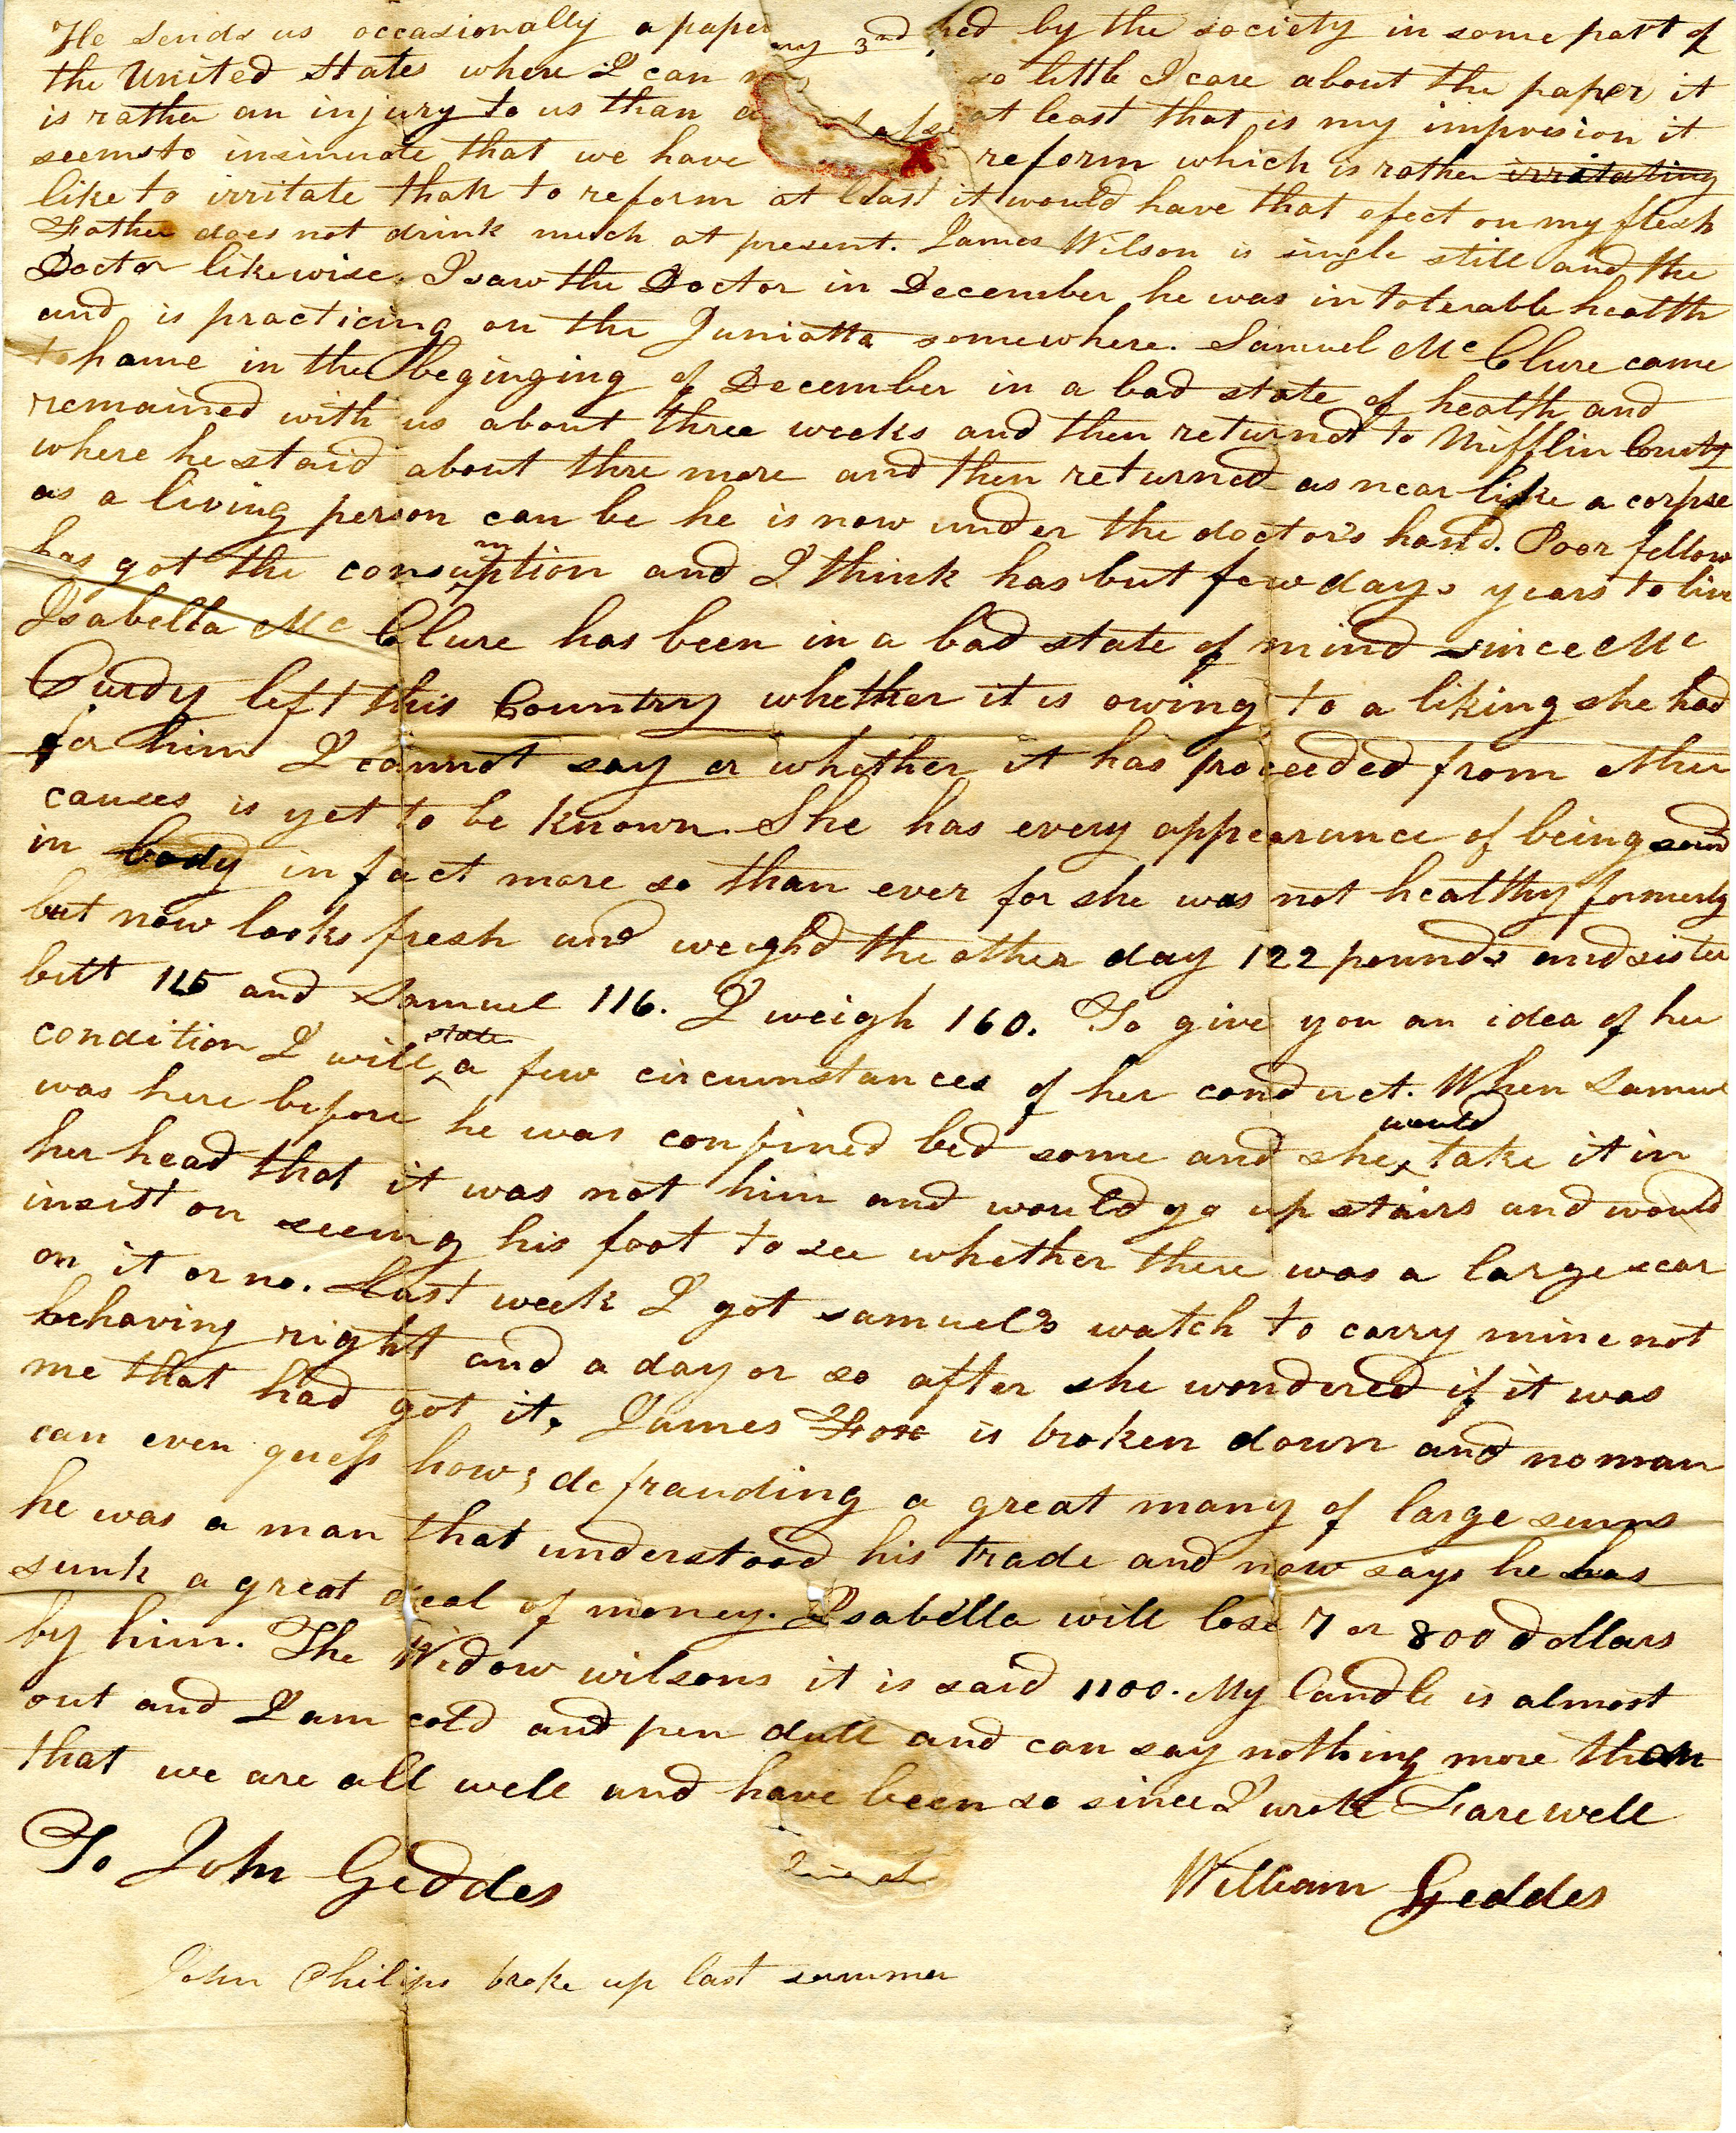 Letter From William Geddes to John Geddes, February 3, 1830 image